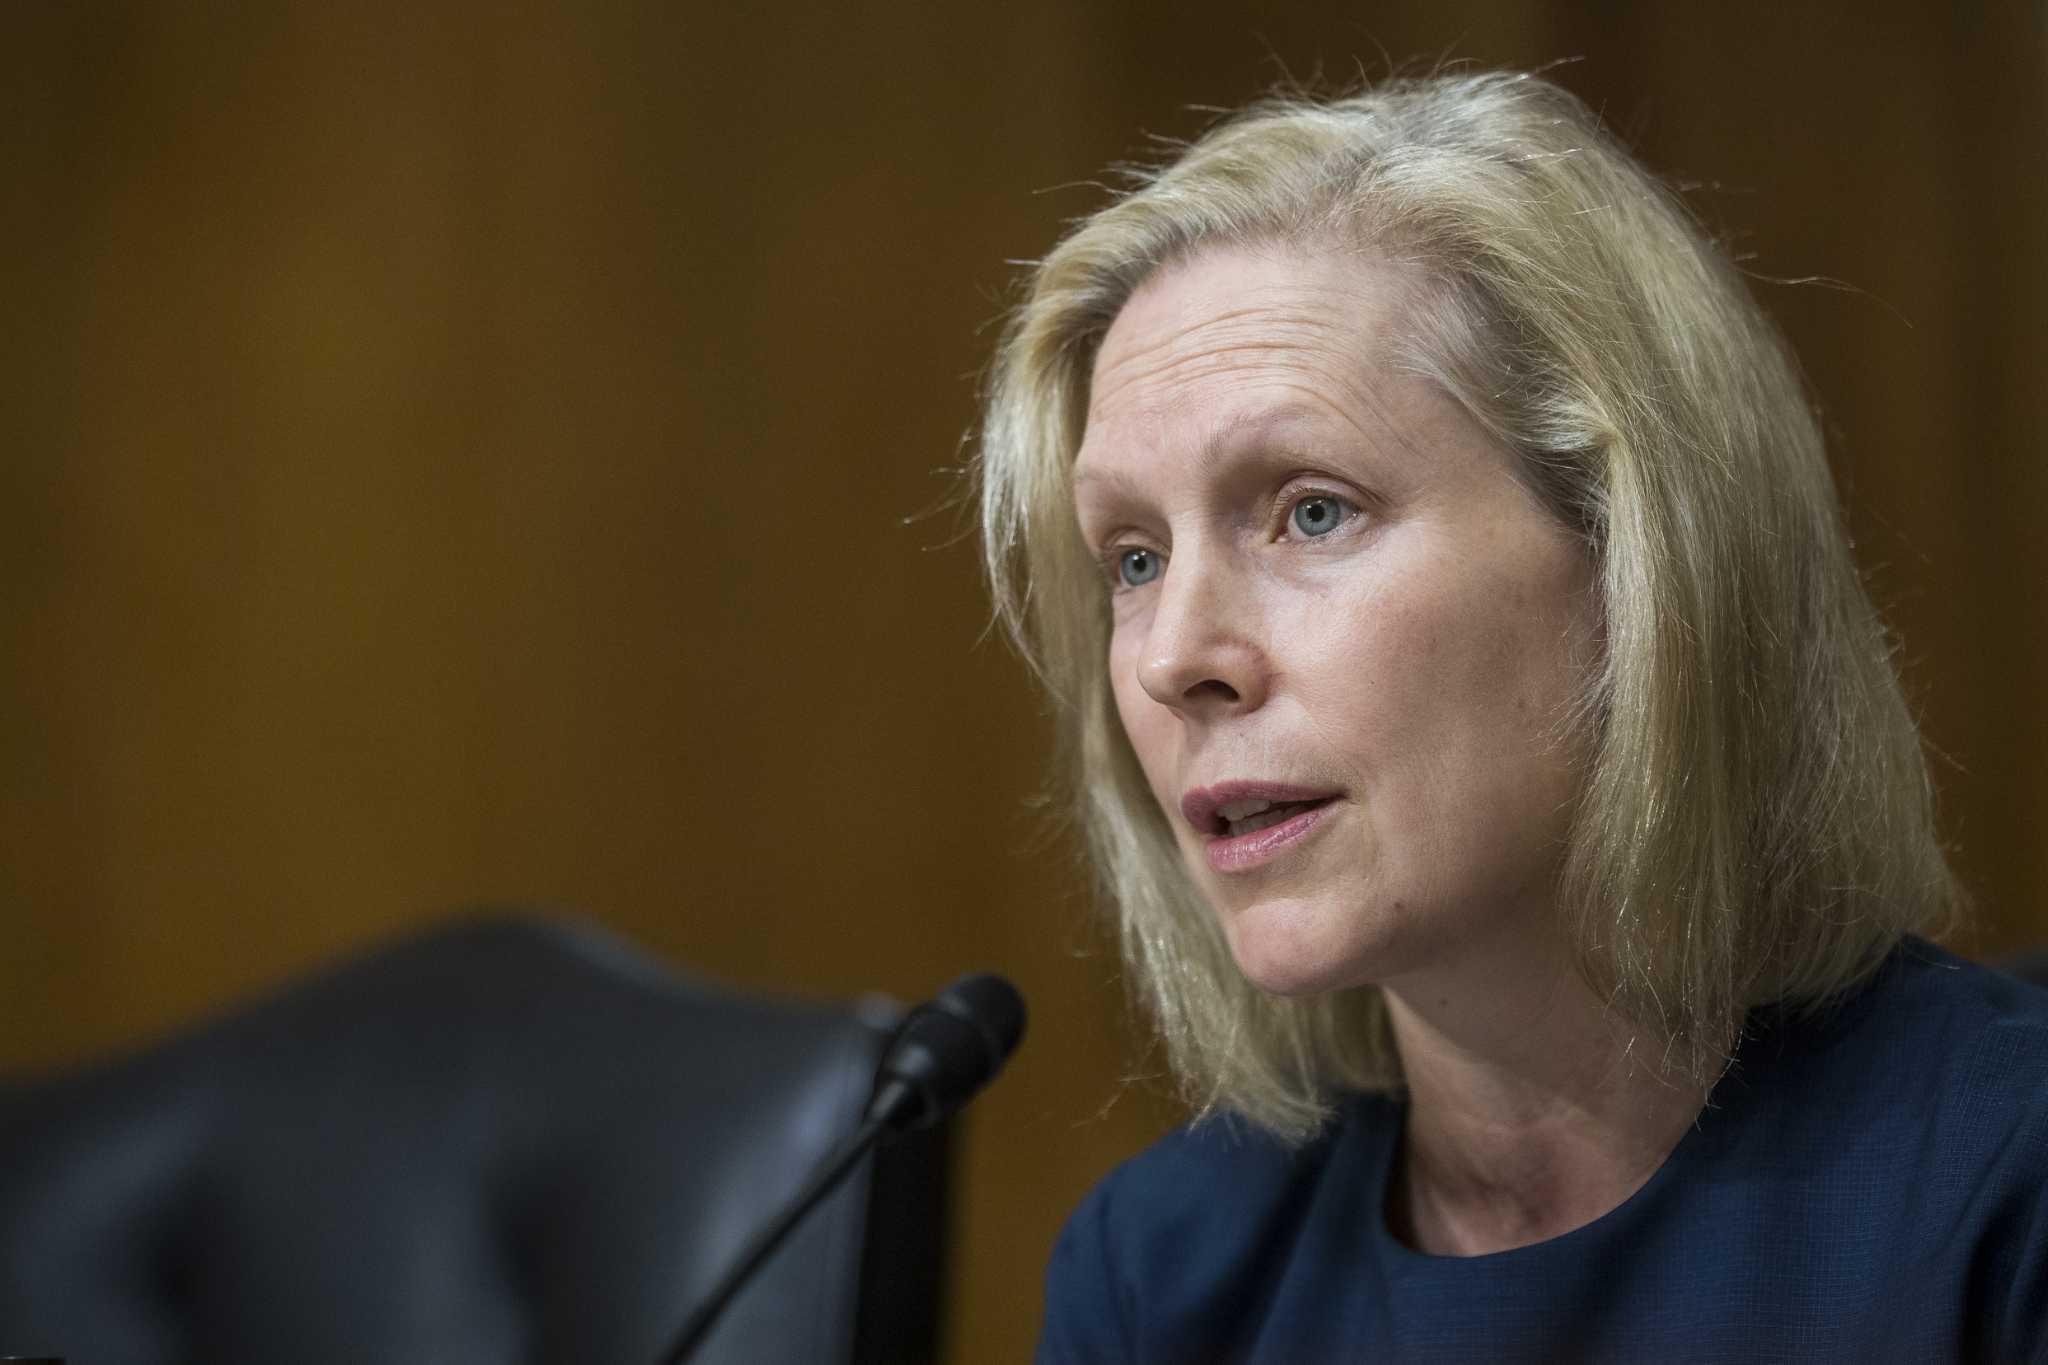 Back in New York, Sen. Gillibrand promotes FAMILY Act